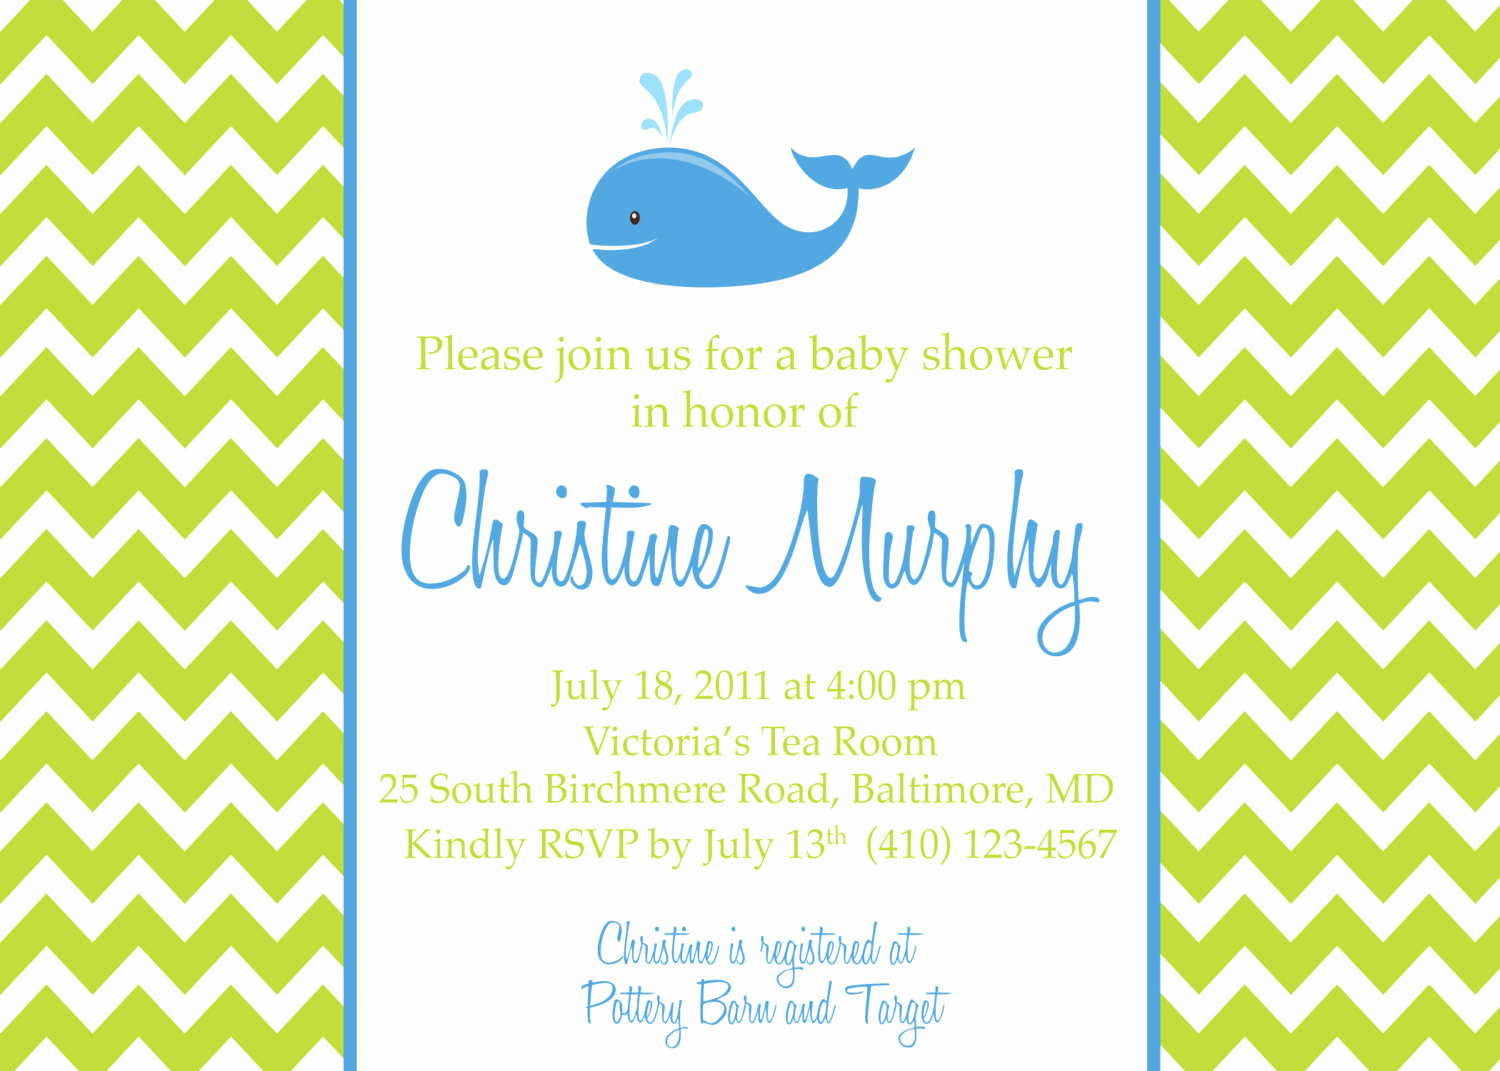 Whale Baby Shower Invitation Template Beautiful Printable Whale Baby Shower Invitations by Bir Sayscawcaw